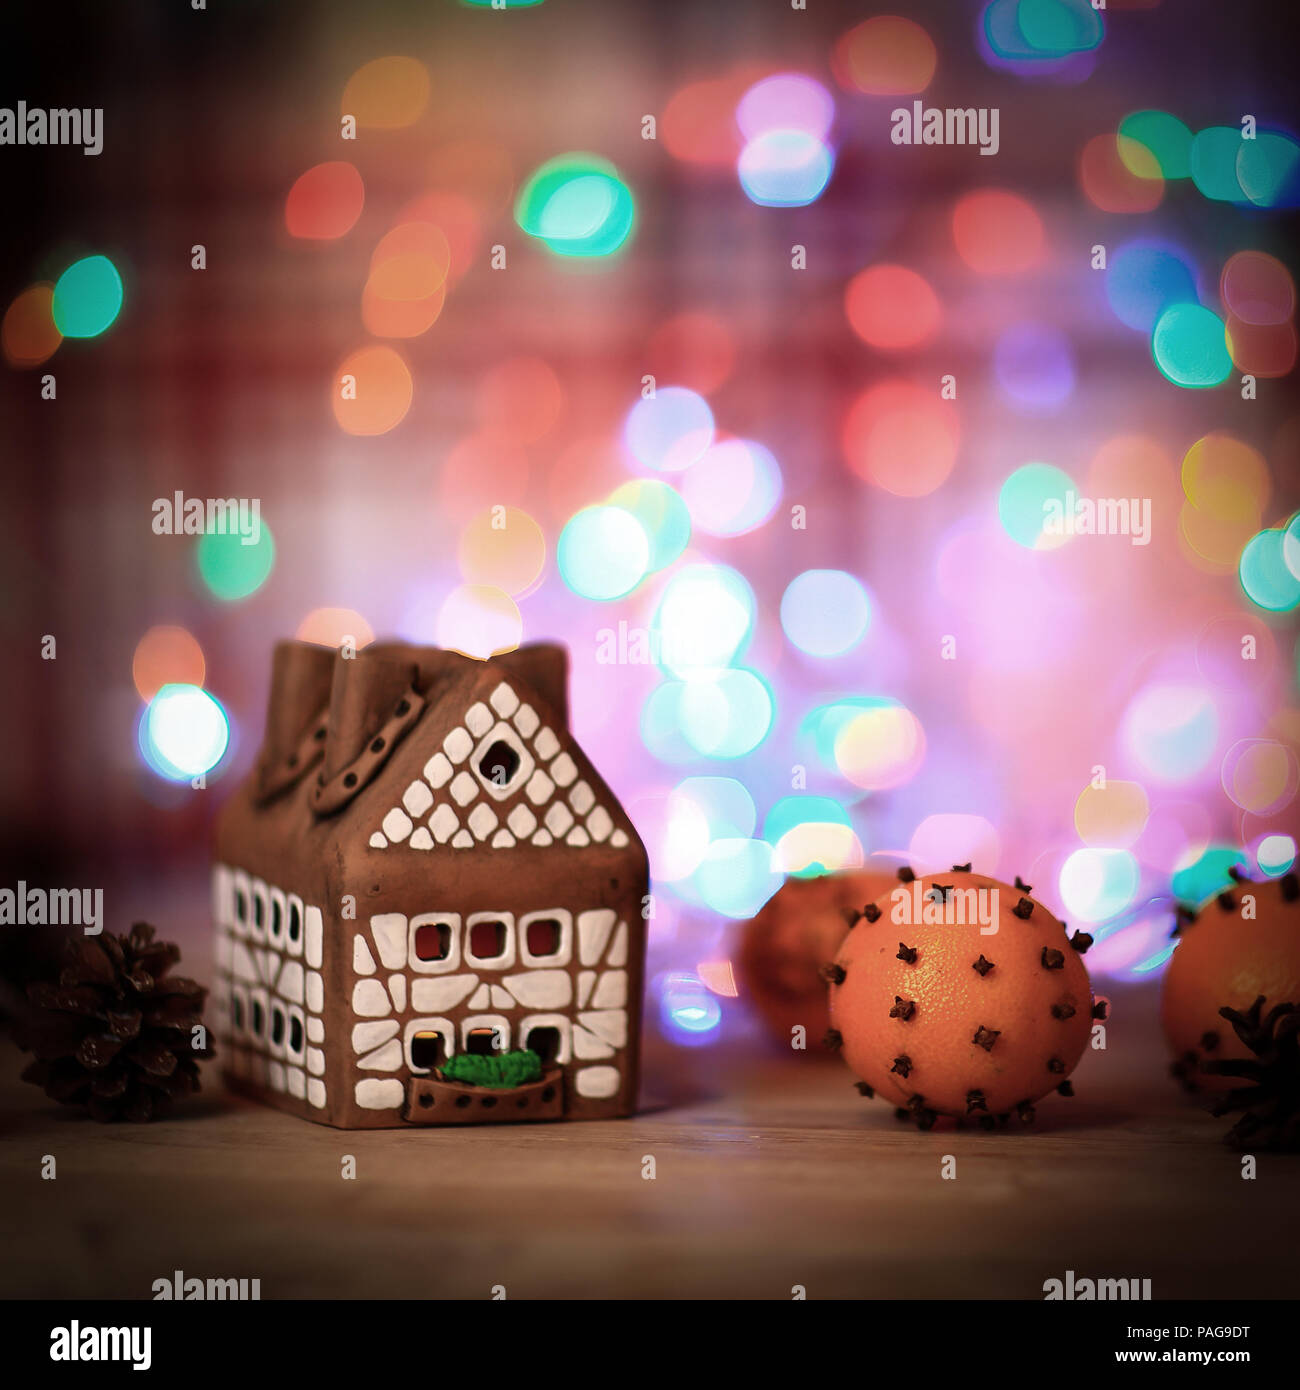 gingerbread house and oranges at the Christmas table - Stock Image